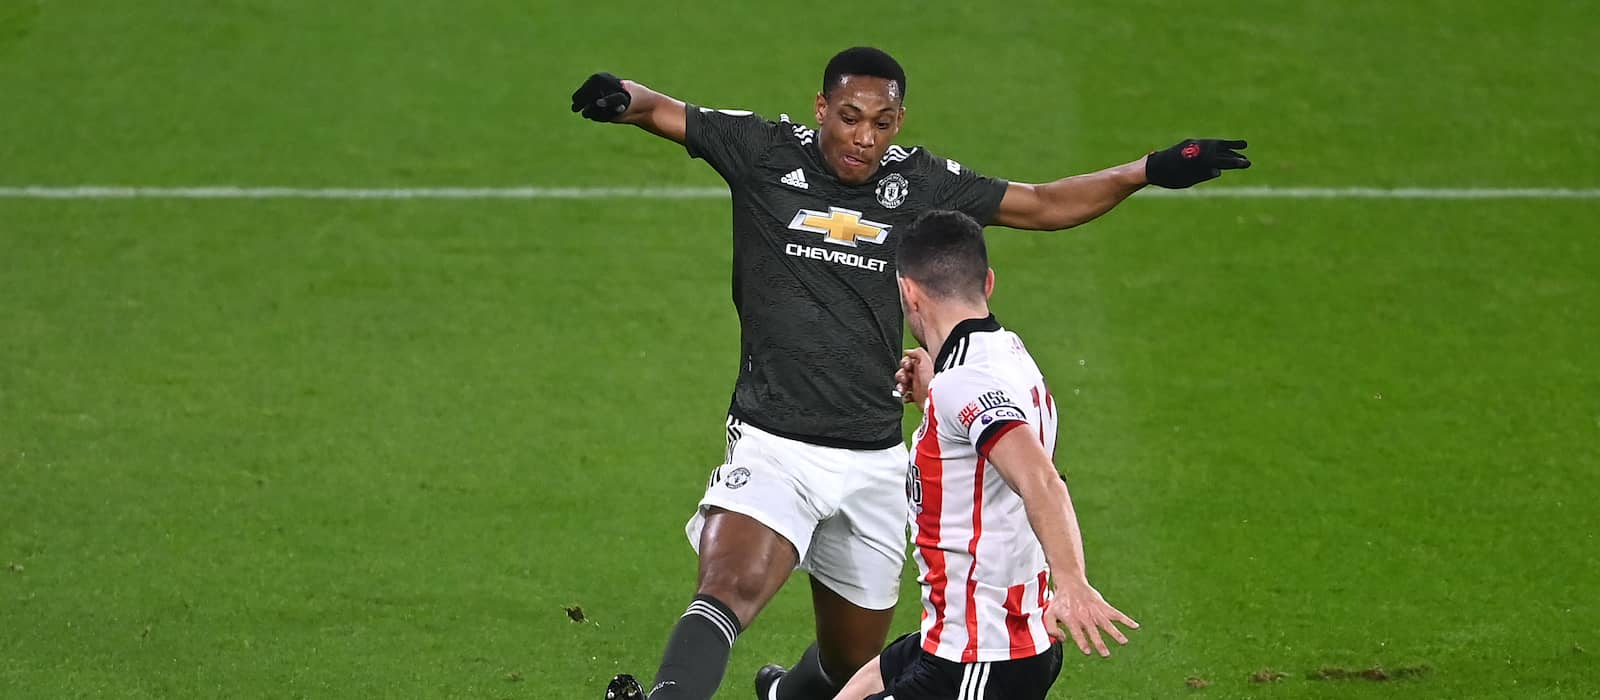 Man United set new Premier League record after Sheffield United victory